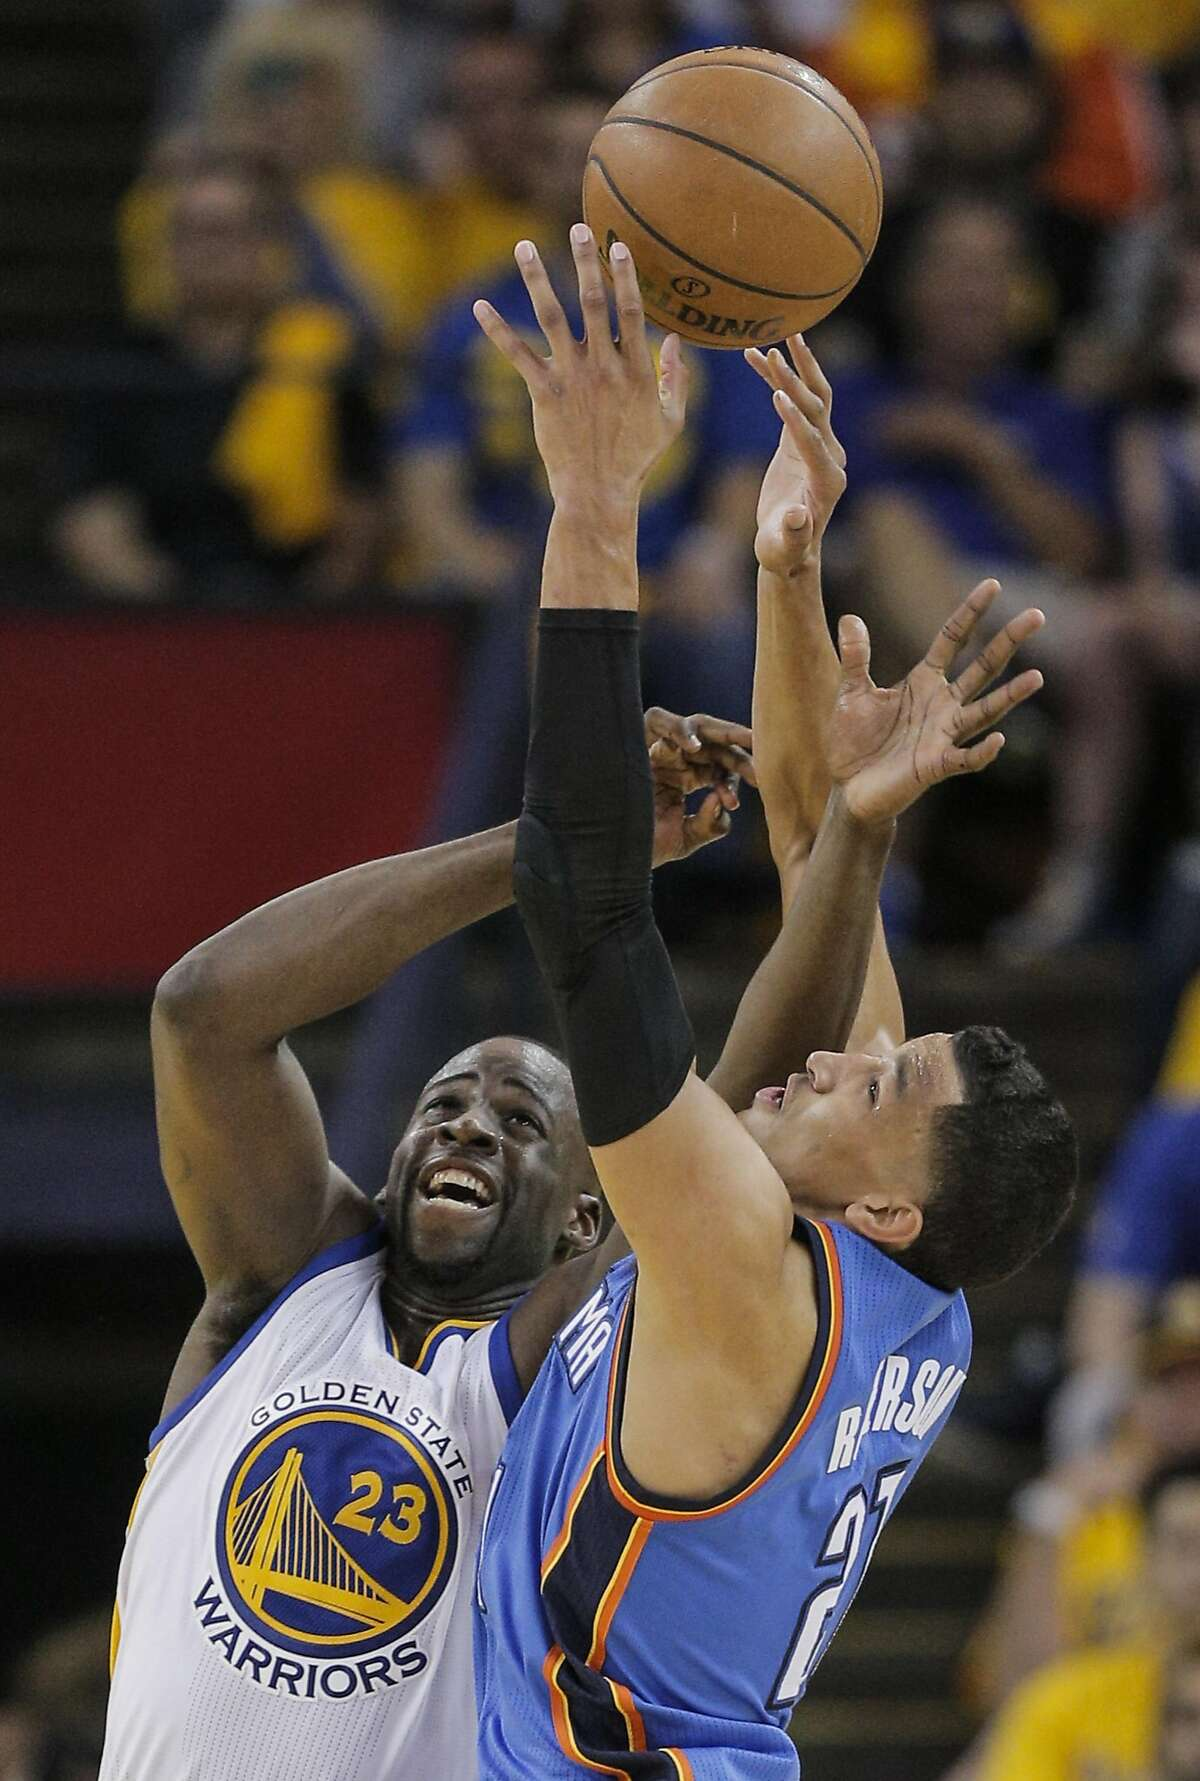 Golden State Warriors� Draymond Green and Oklahoma City Thunders� Andre Roberson fight for a fourth quarter rebound during Game 1 of the NBA Western Conference Finals at Oracle Arena on Monday, May 16, 2016 in Oakland, Calif.